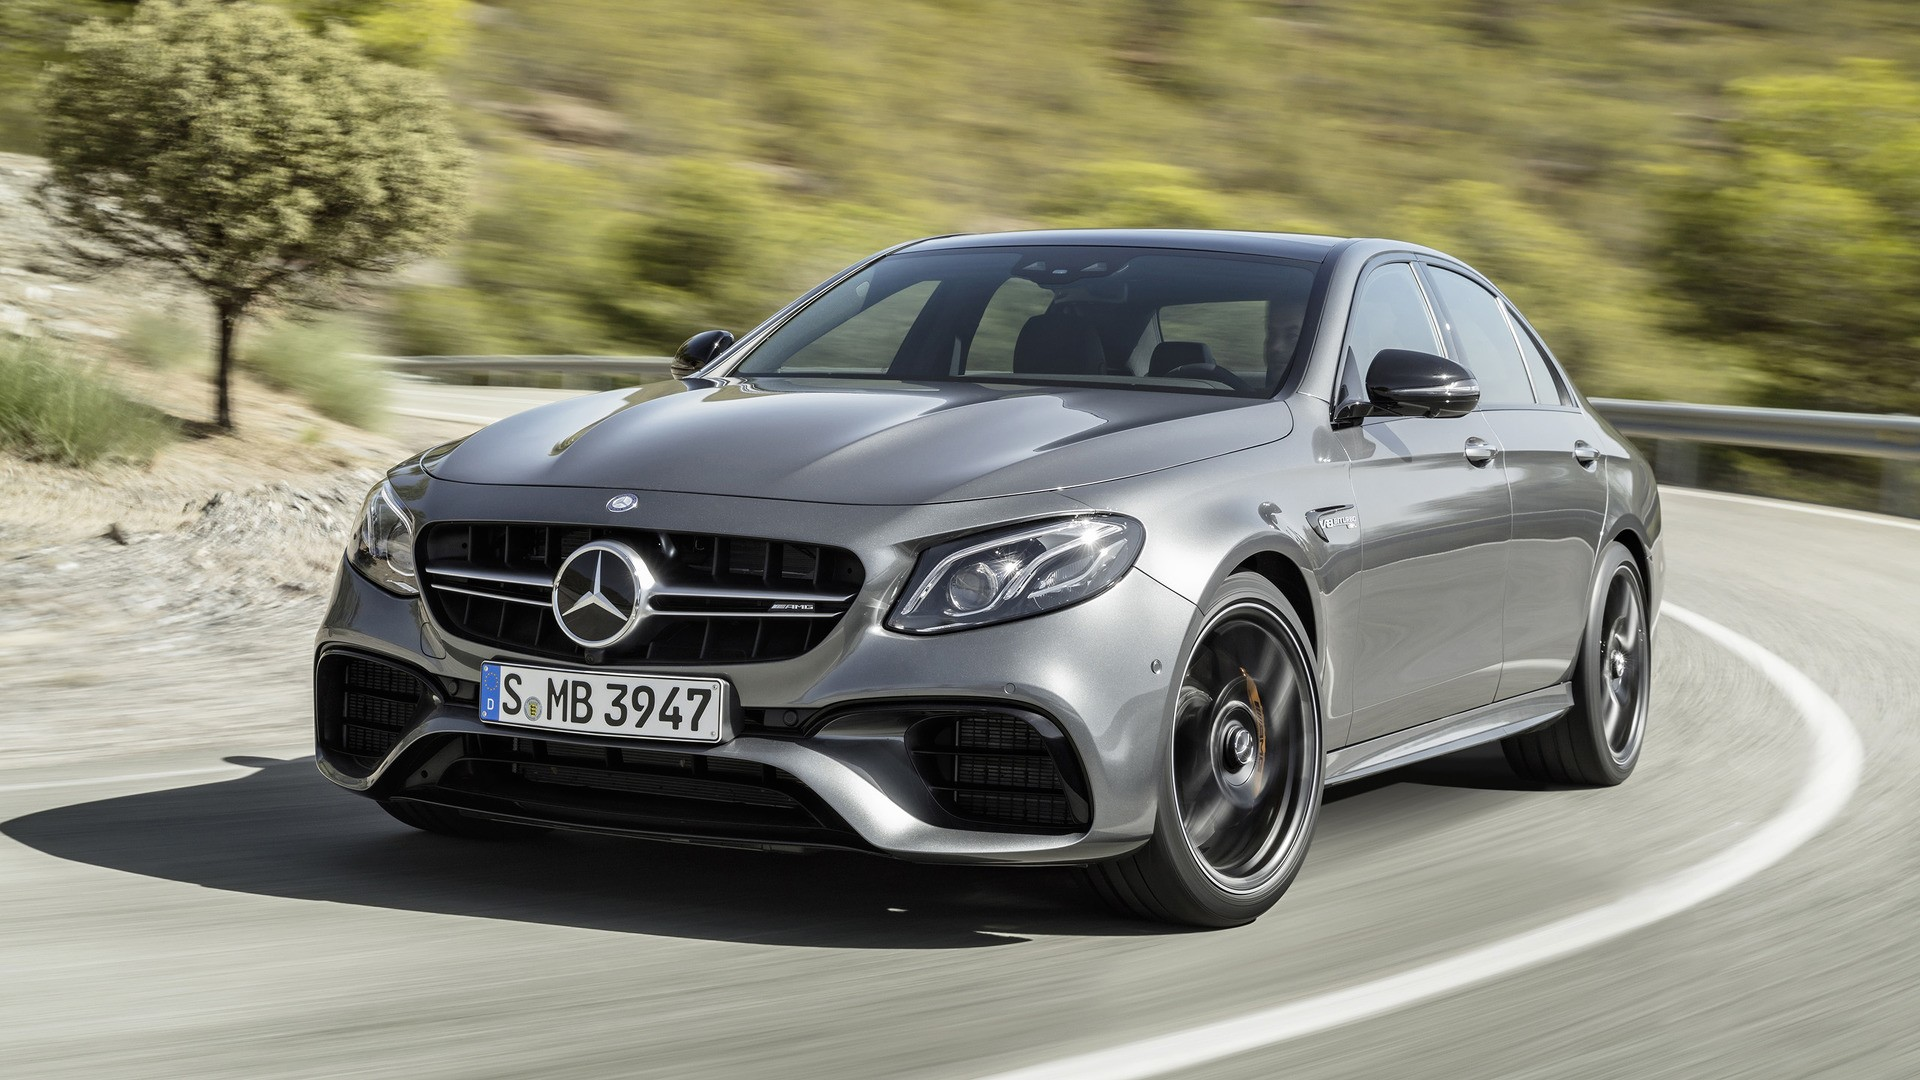 Mercedes benz uk prices e63 4matic sedan from gbp 78 935 for How much a mercedes benz cost